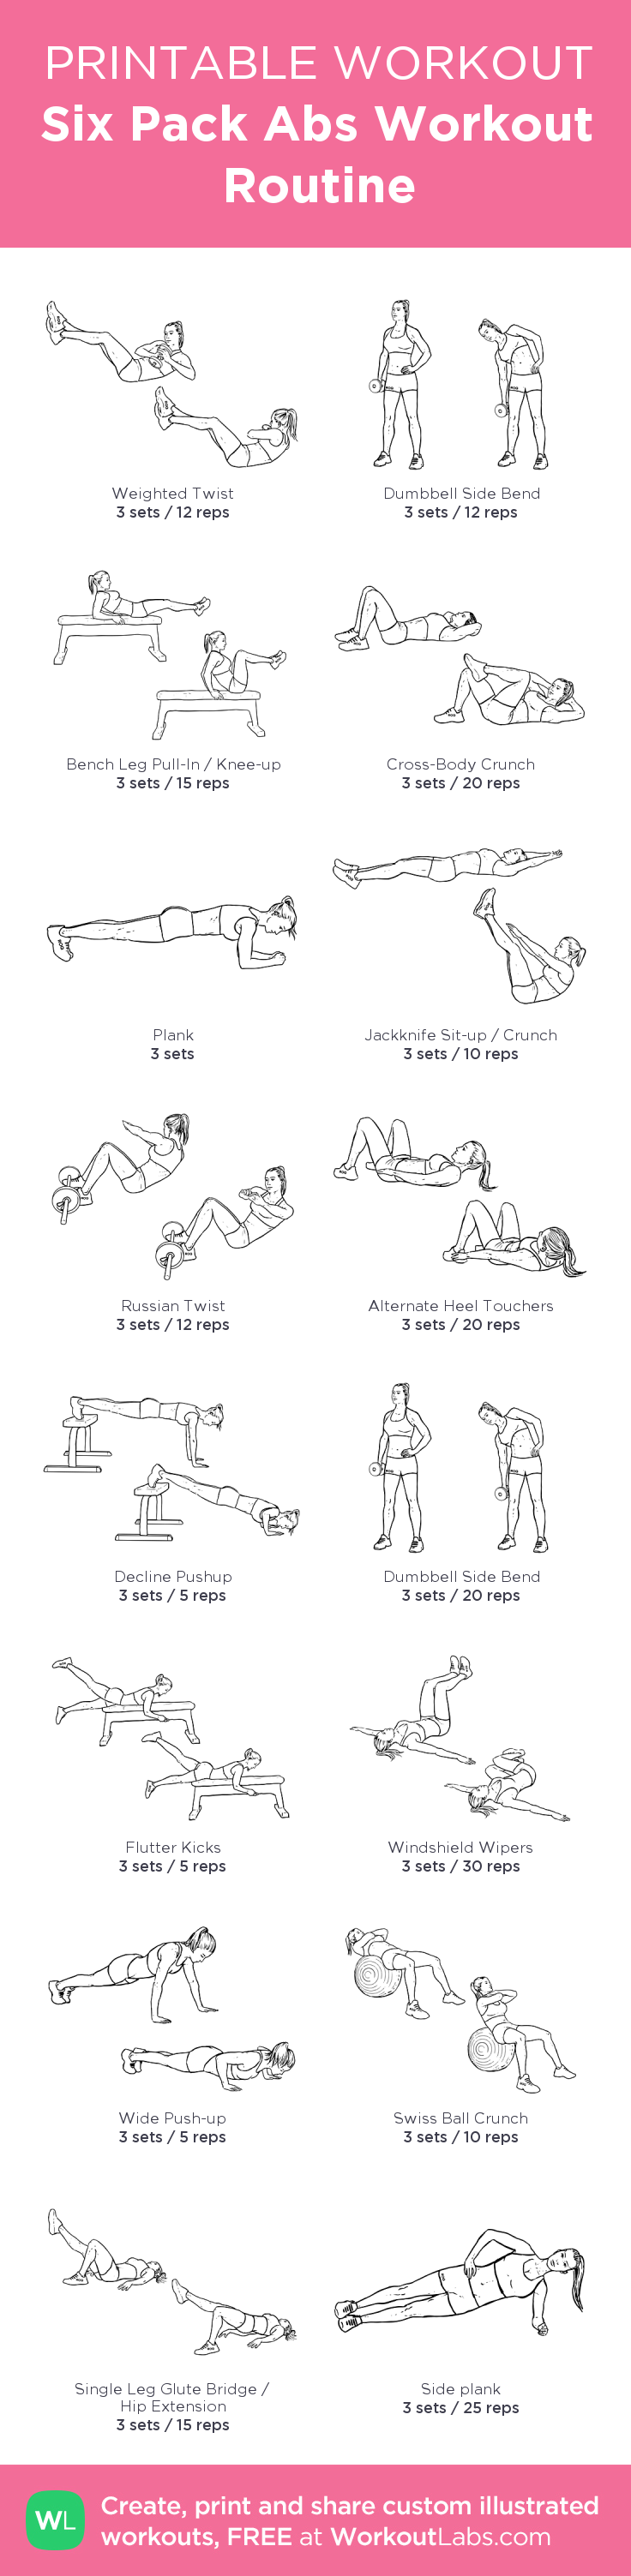 graphic about Printable Ab Workout identified as 6 Pack Ab muscles Exercise Schedule: my personalized printable exercise through